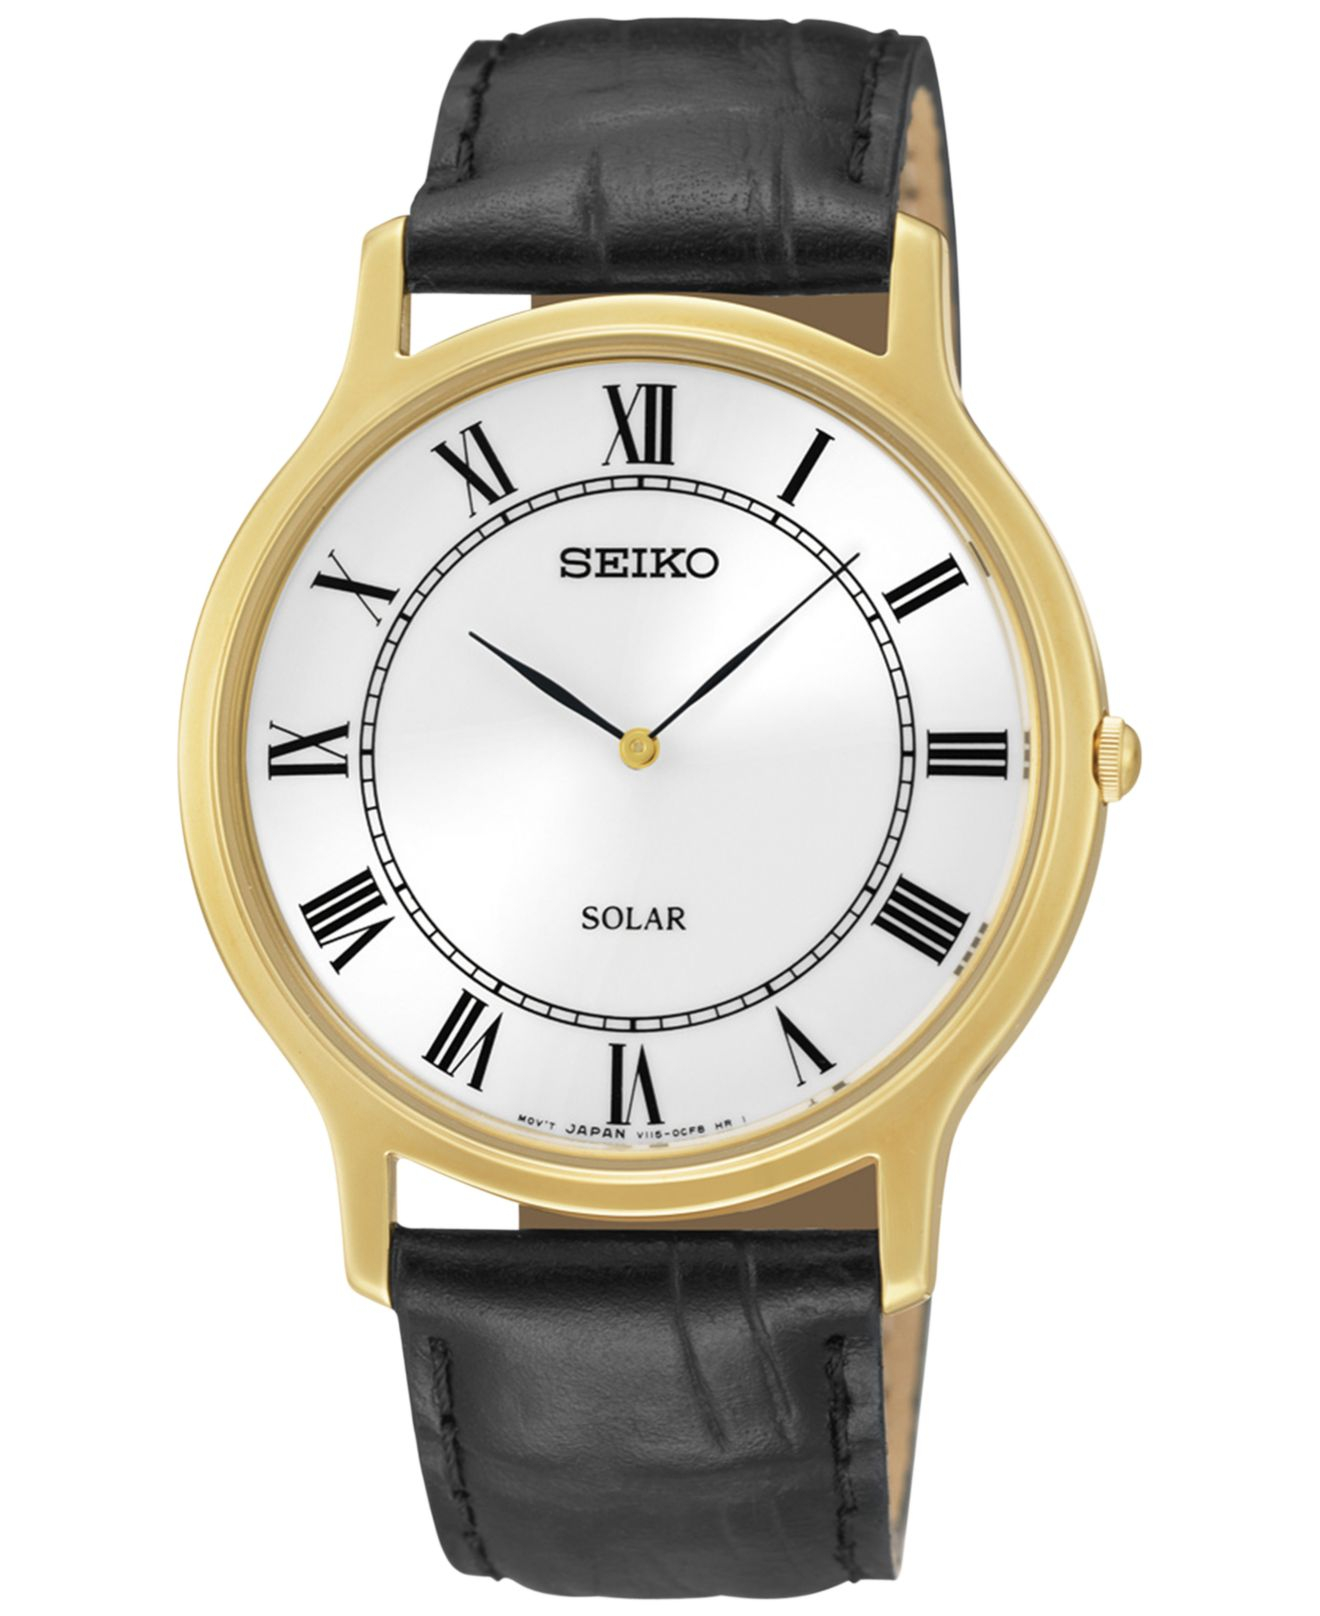 Seiko Mens Solar Black Leather Strap Watch 38mm Sup878 In For